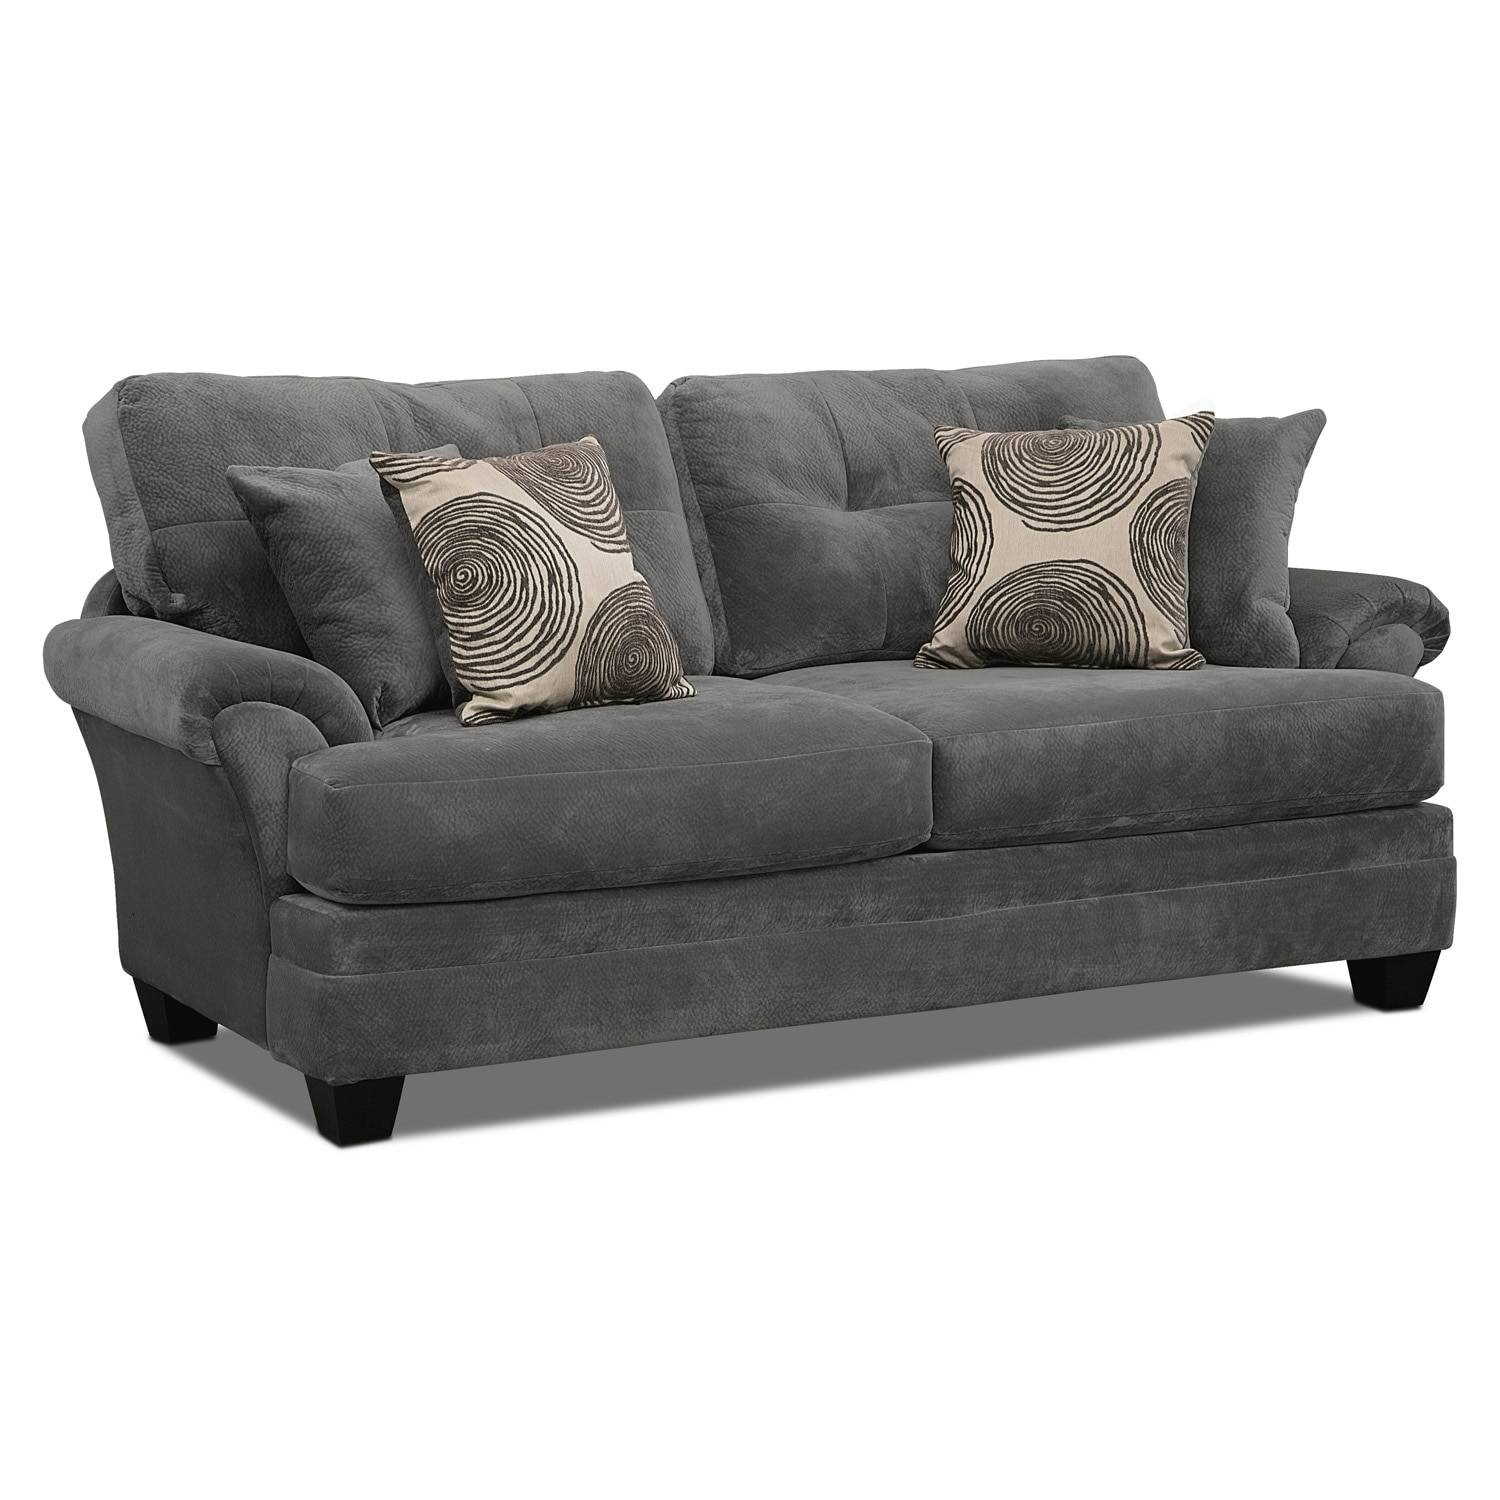 Cordelle Sofa, Loveseat And Swivel Chair Set – Gray | Value City With Regard To Swivel Sofa Chairs (View 7 of 30)